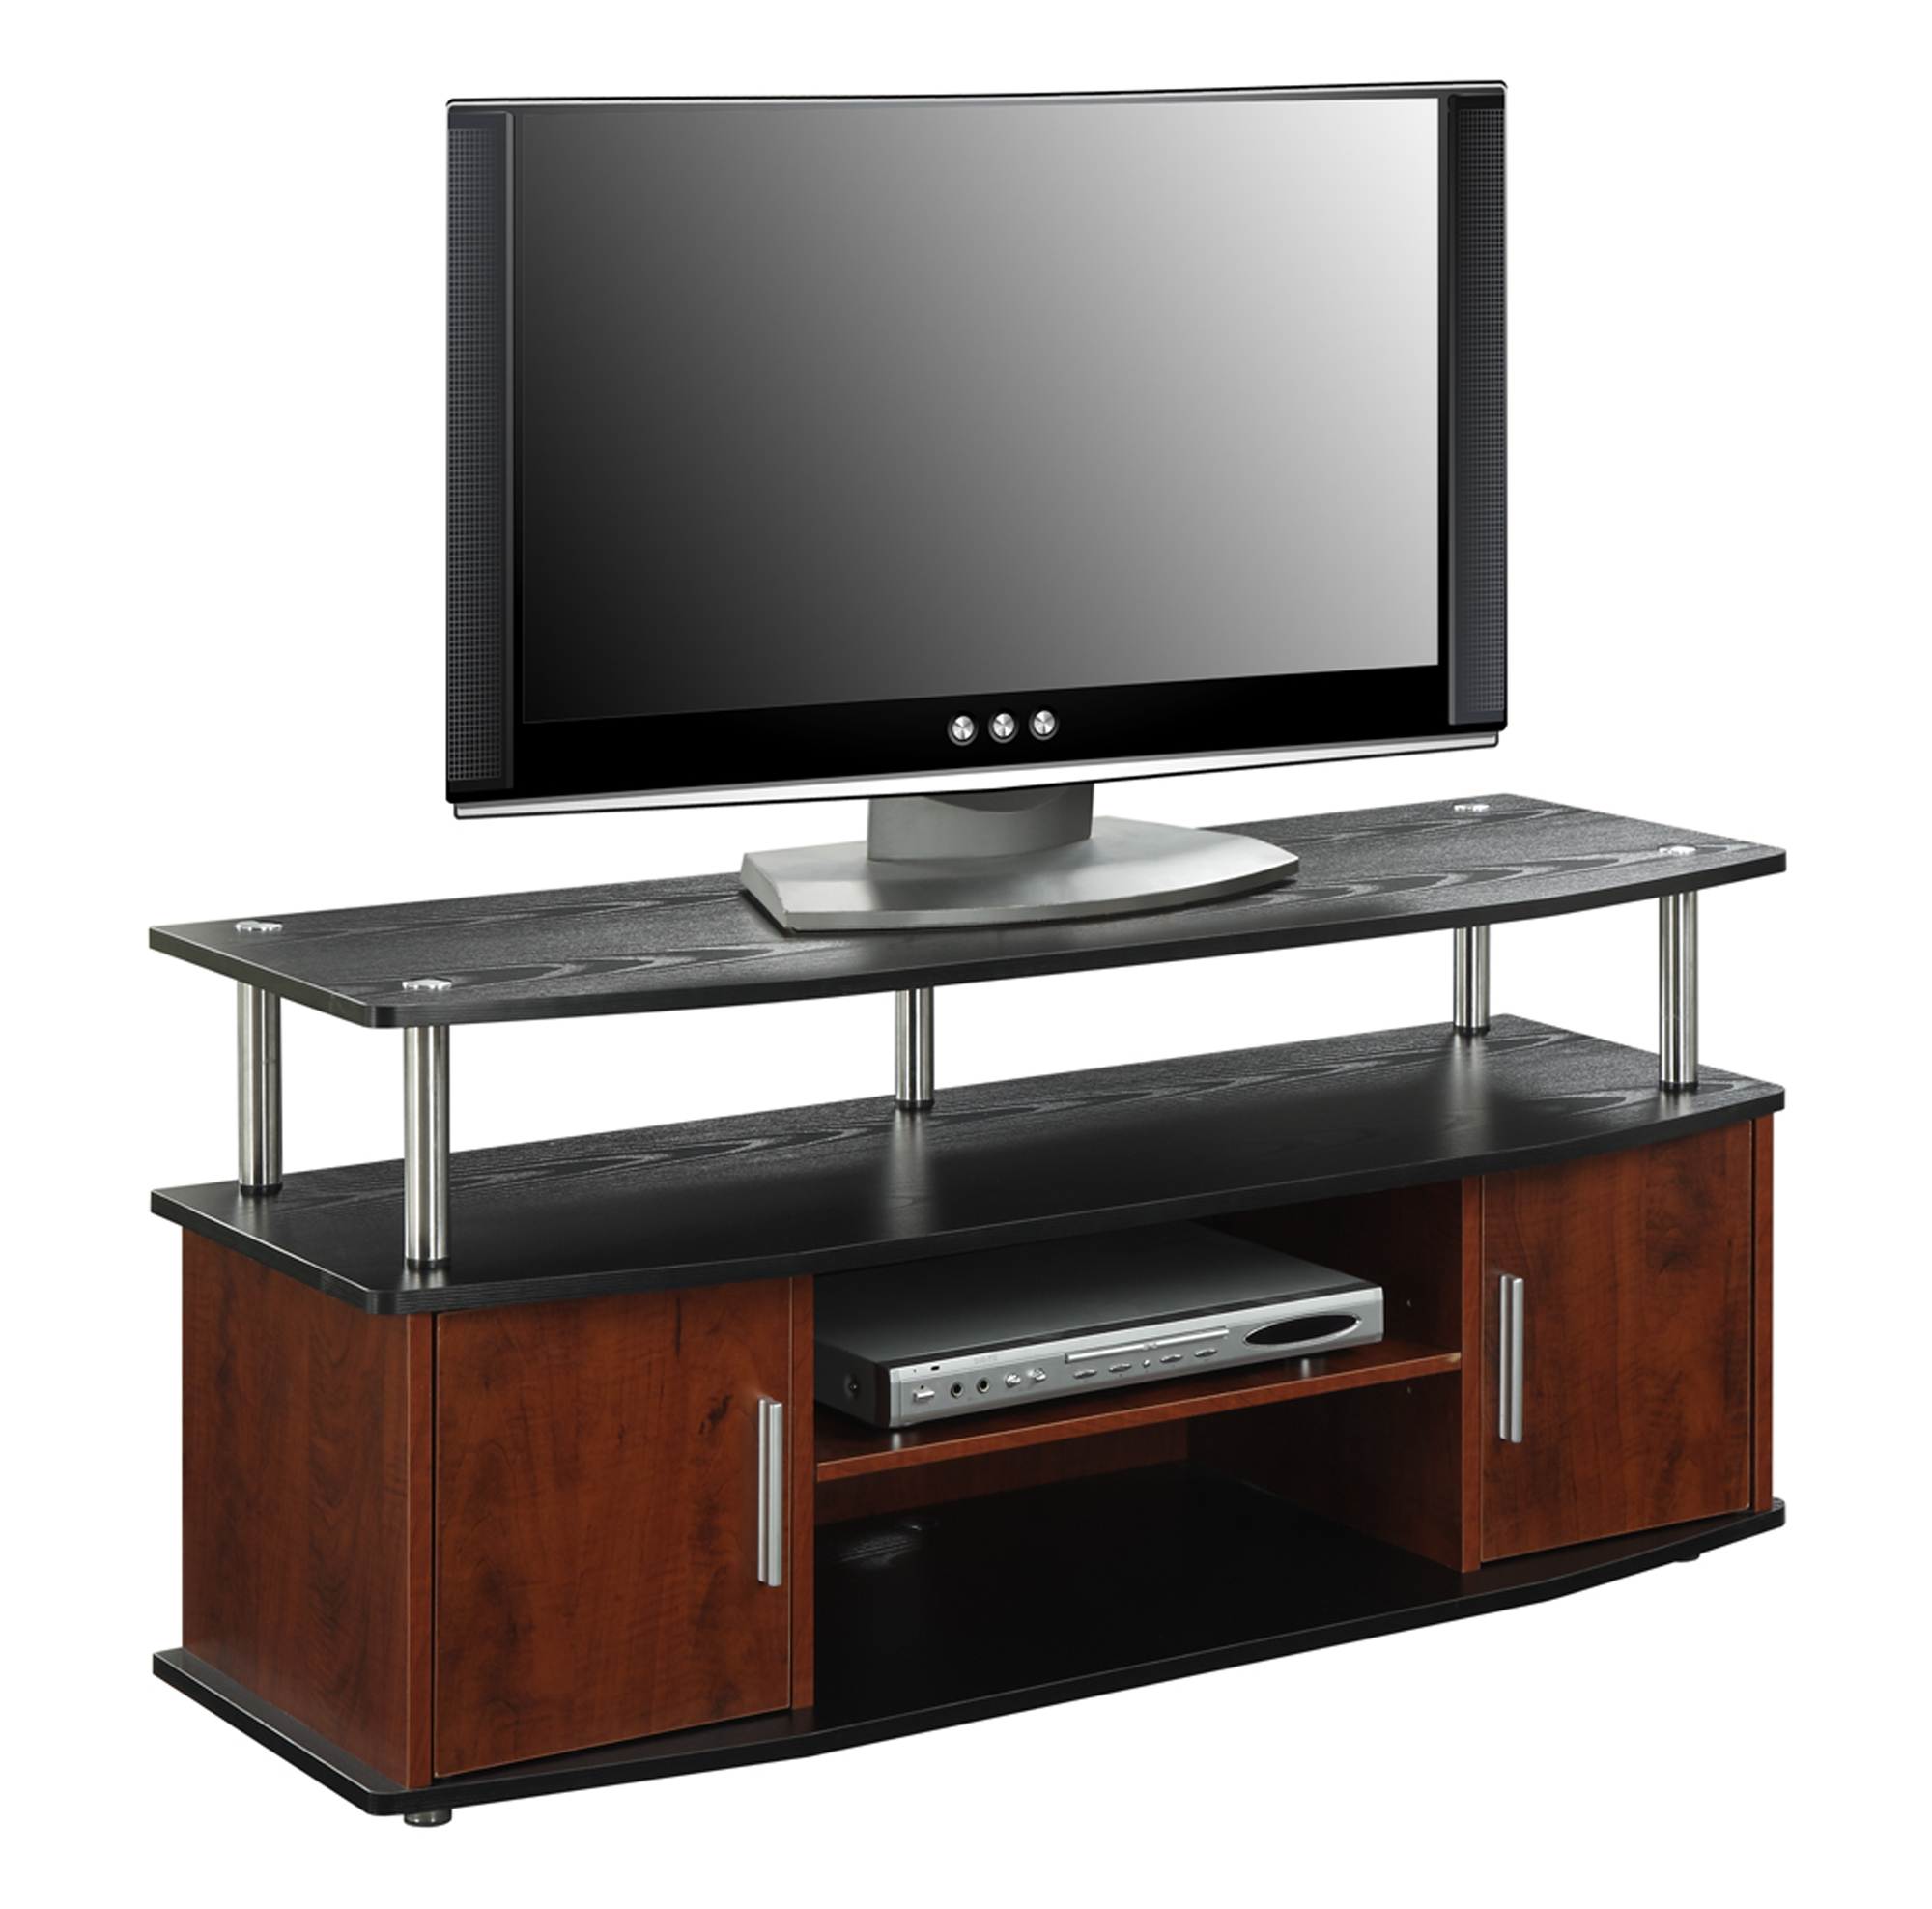 Center Tables With Storage Smart Tv Stand Entertainment Center Modern Console